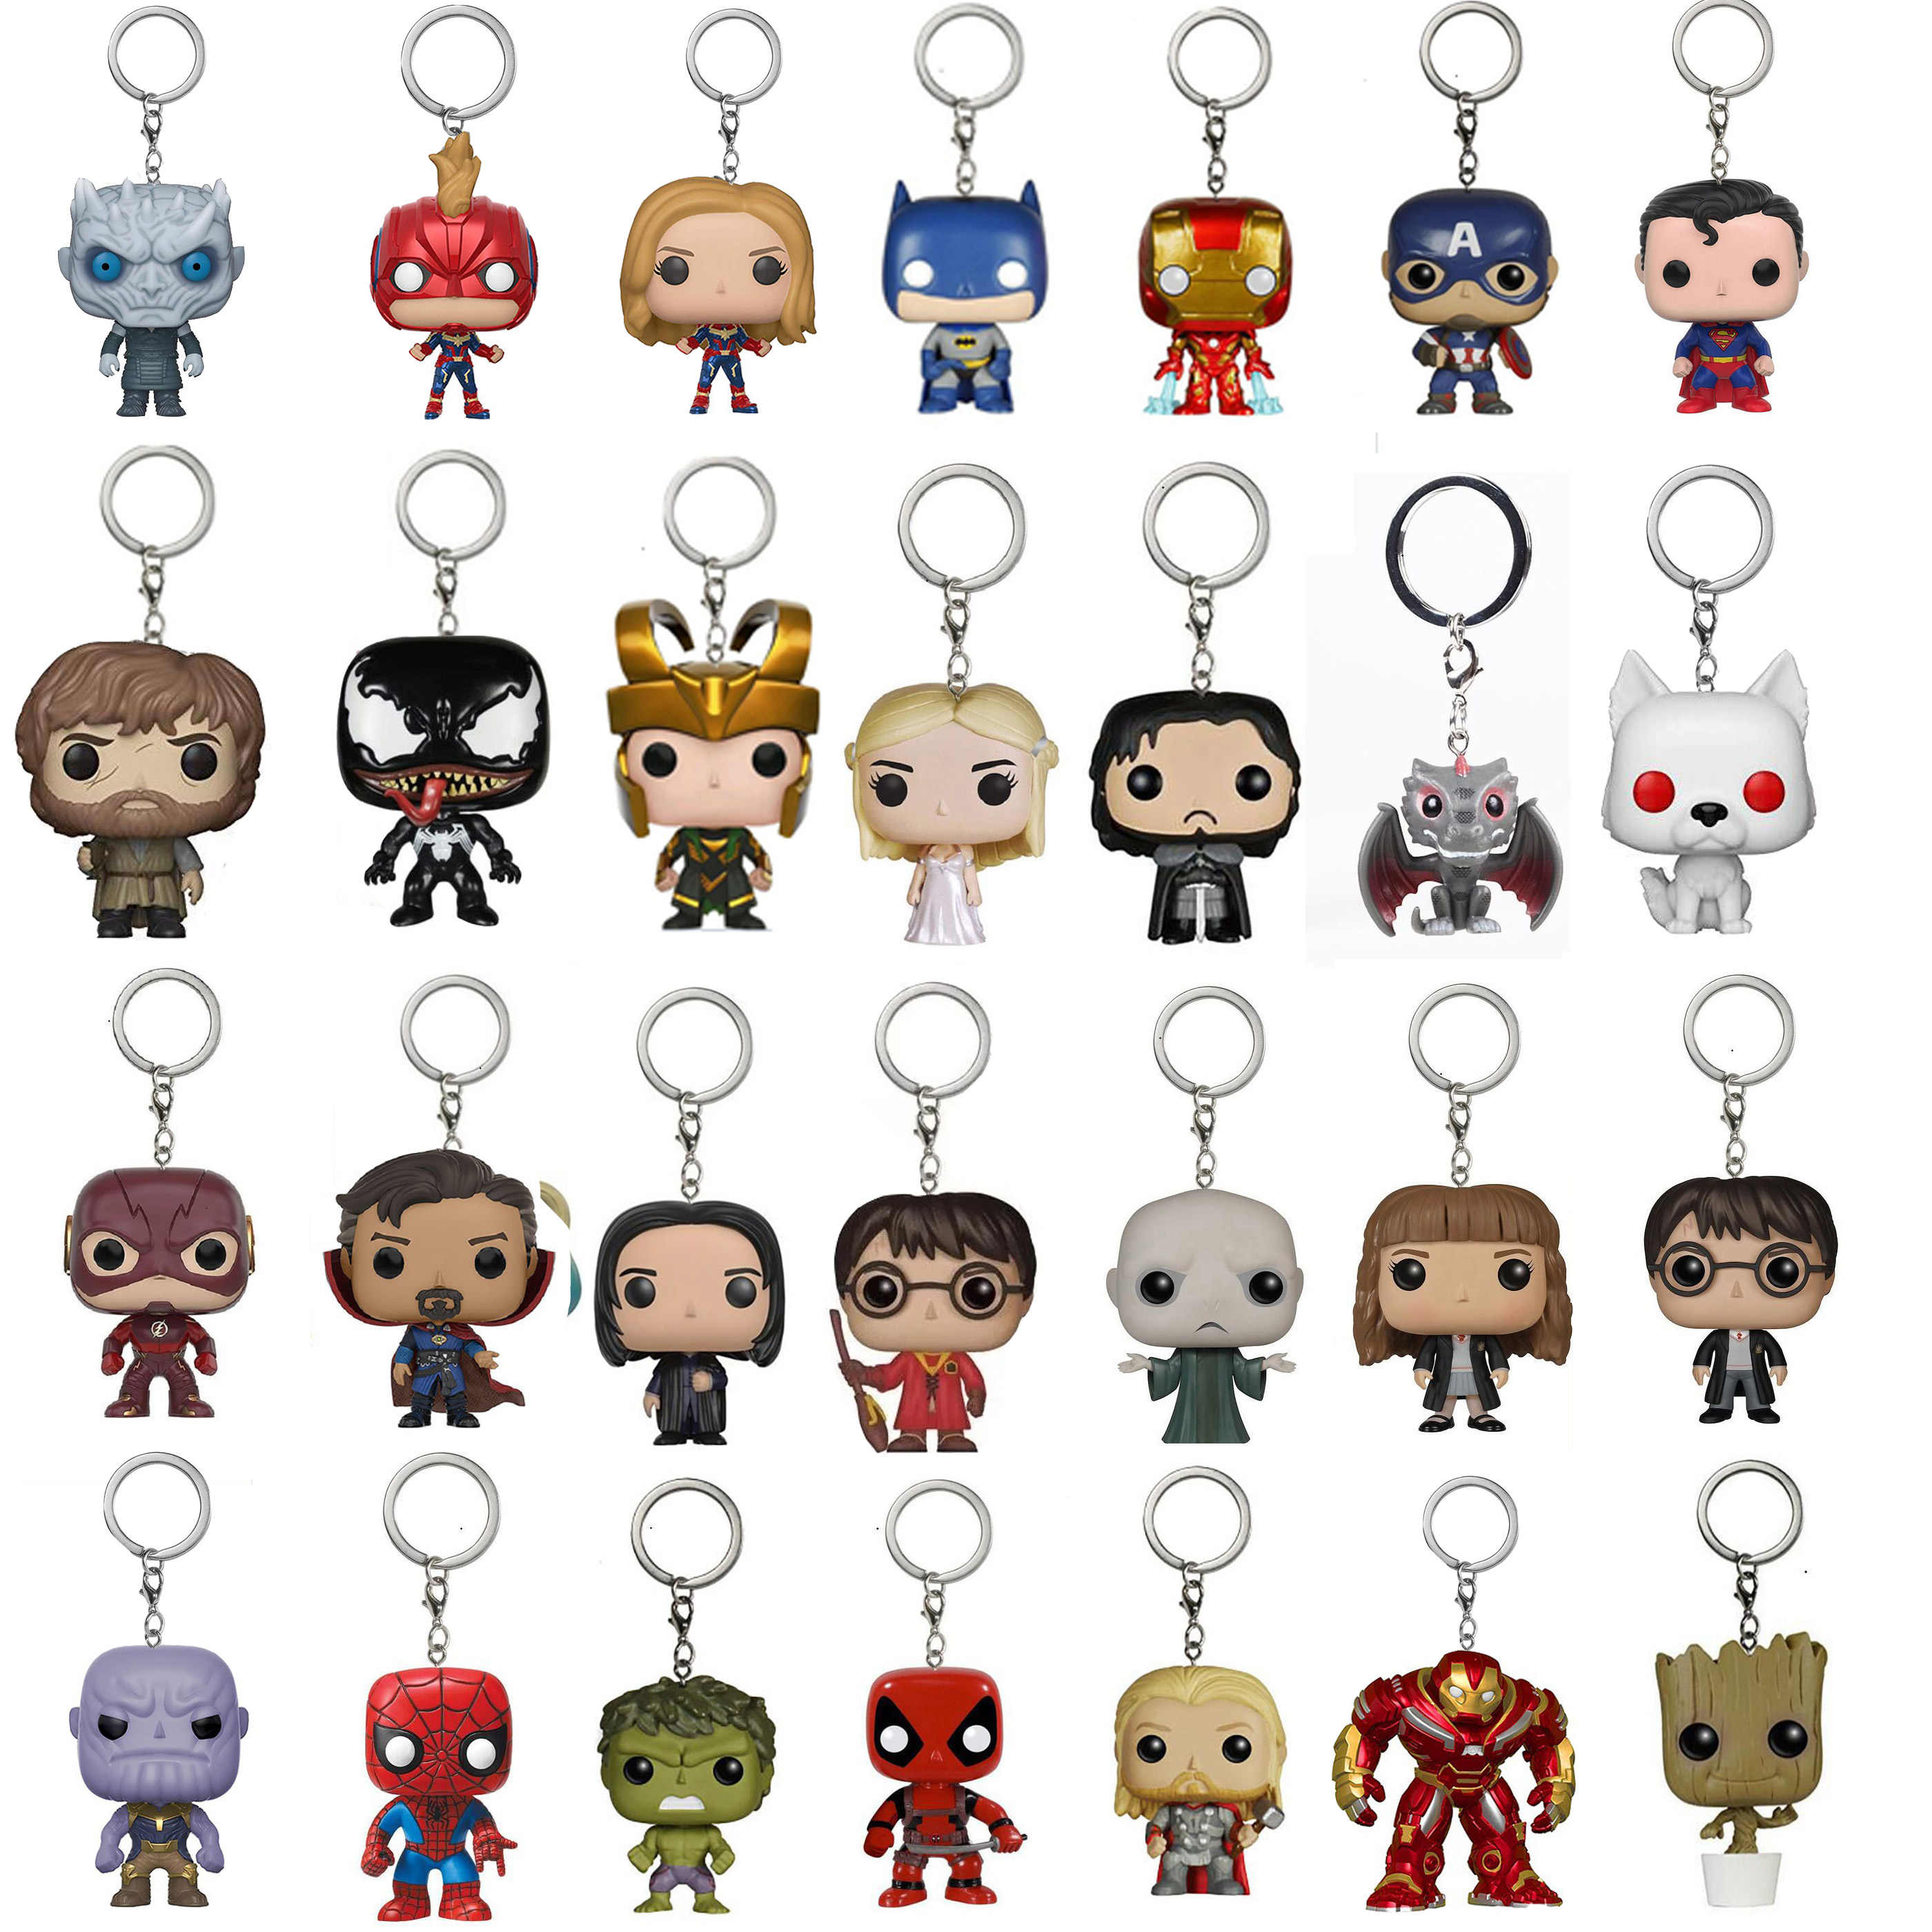 DC Marvel the avengers 2 Super heroes giocattolo Portachiavi Spider-man Batman Superman Deadpool Iron Man Hulk Capitan America giocattoli in vinile